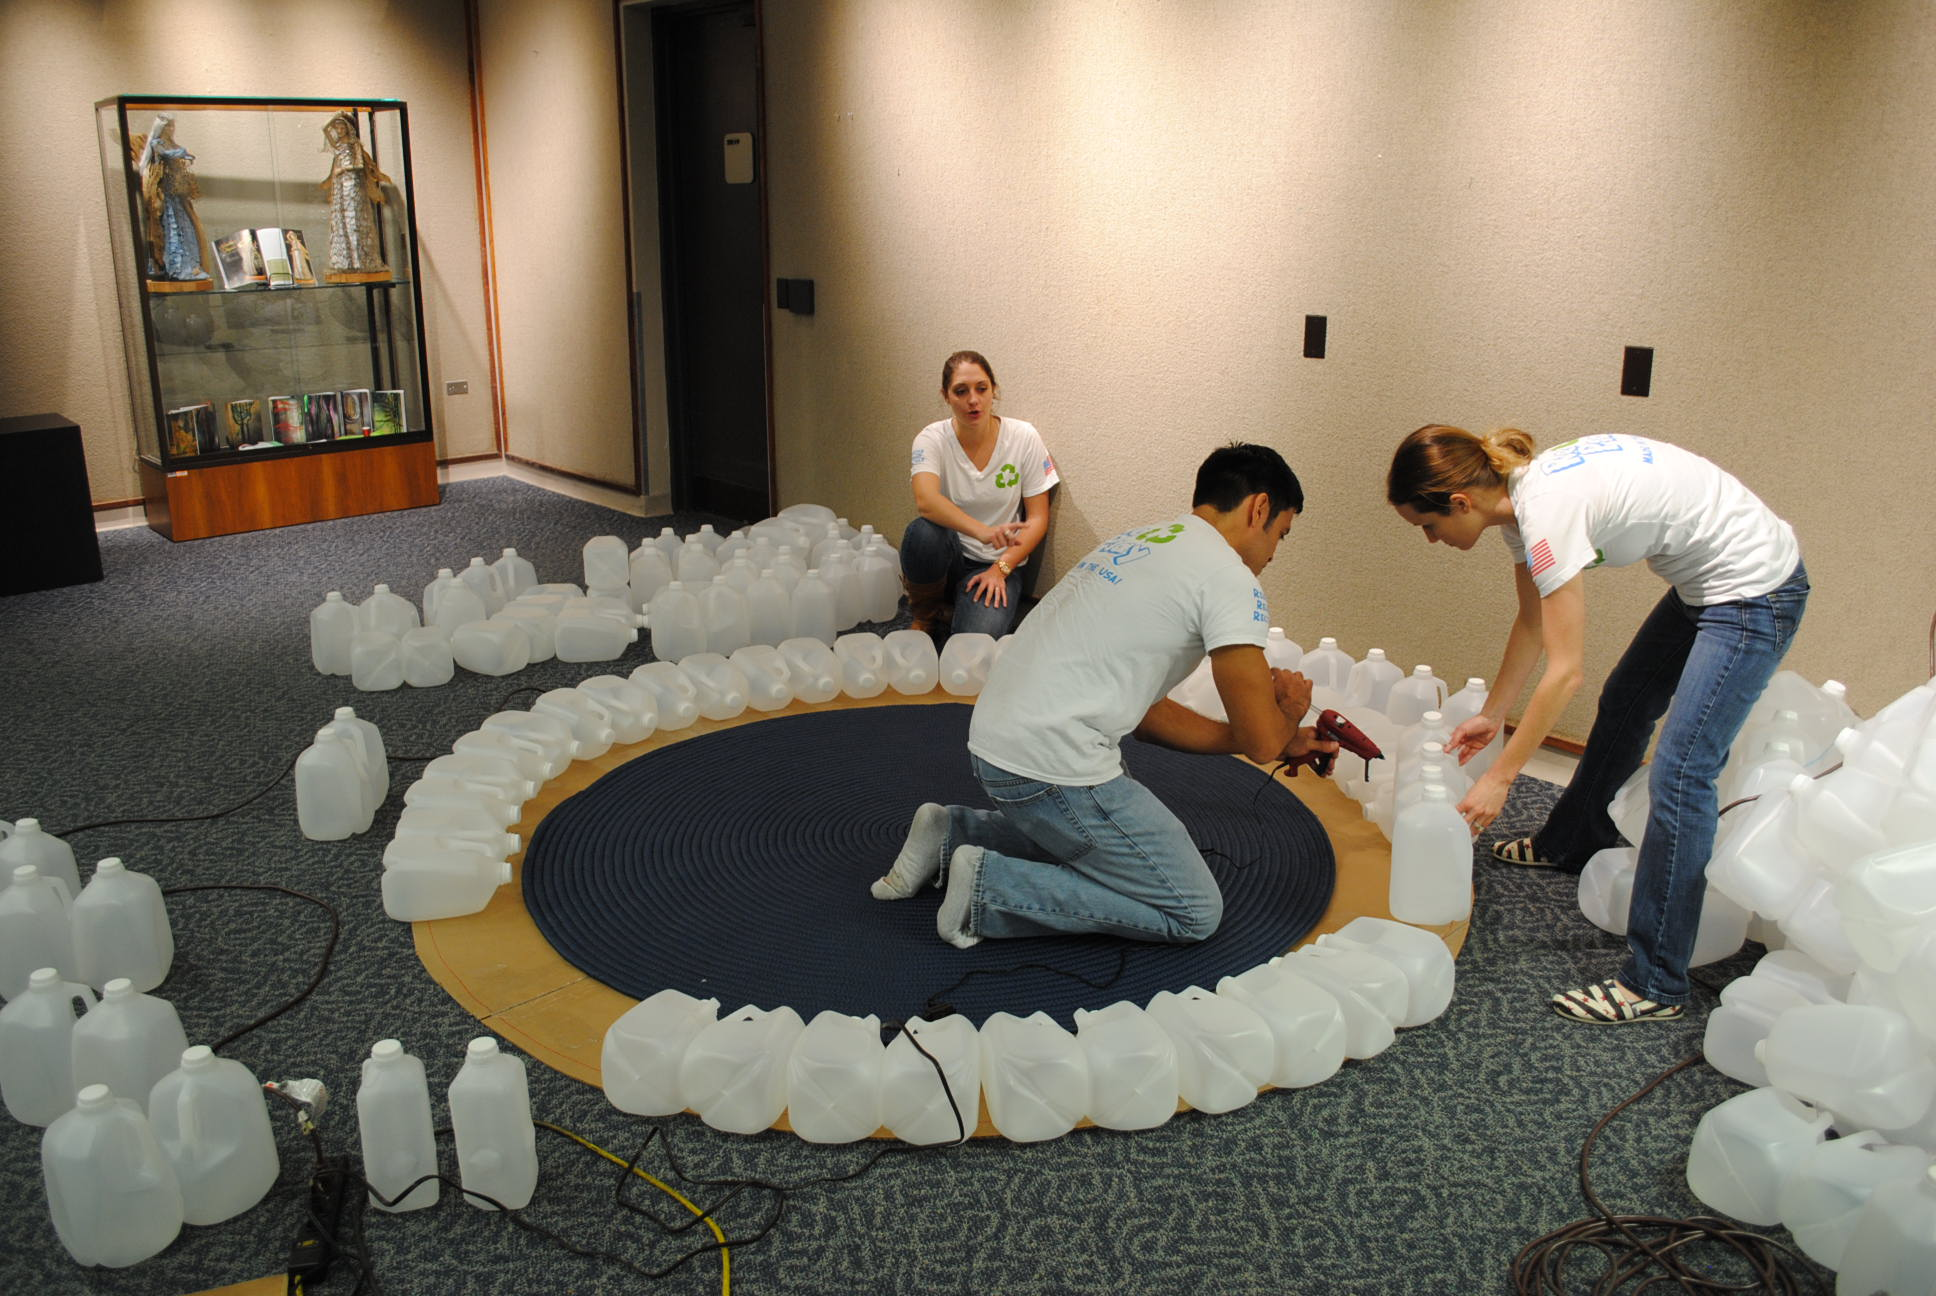 Five easy team building activities great expectations for How to build an igloo out of milk jugs